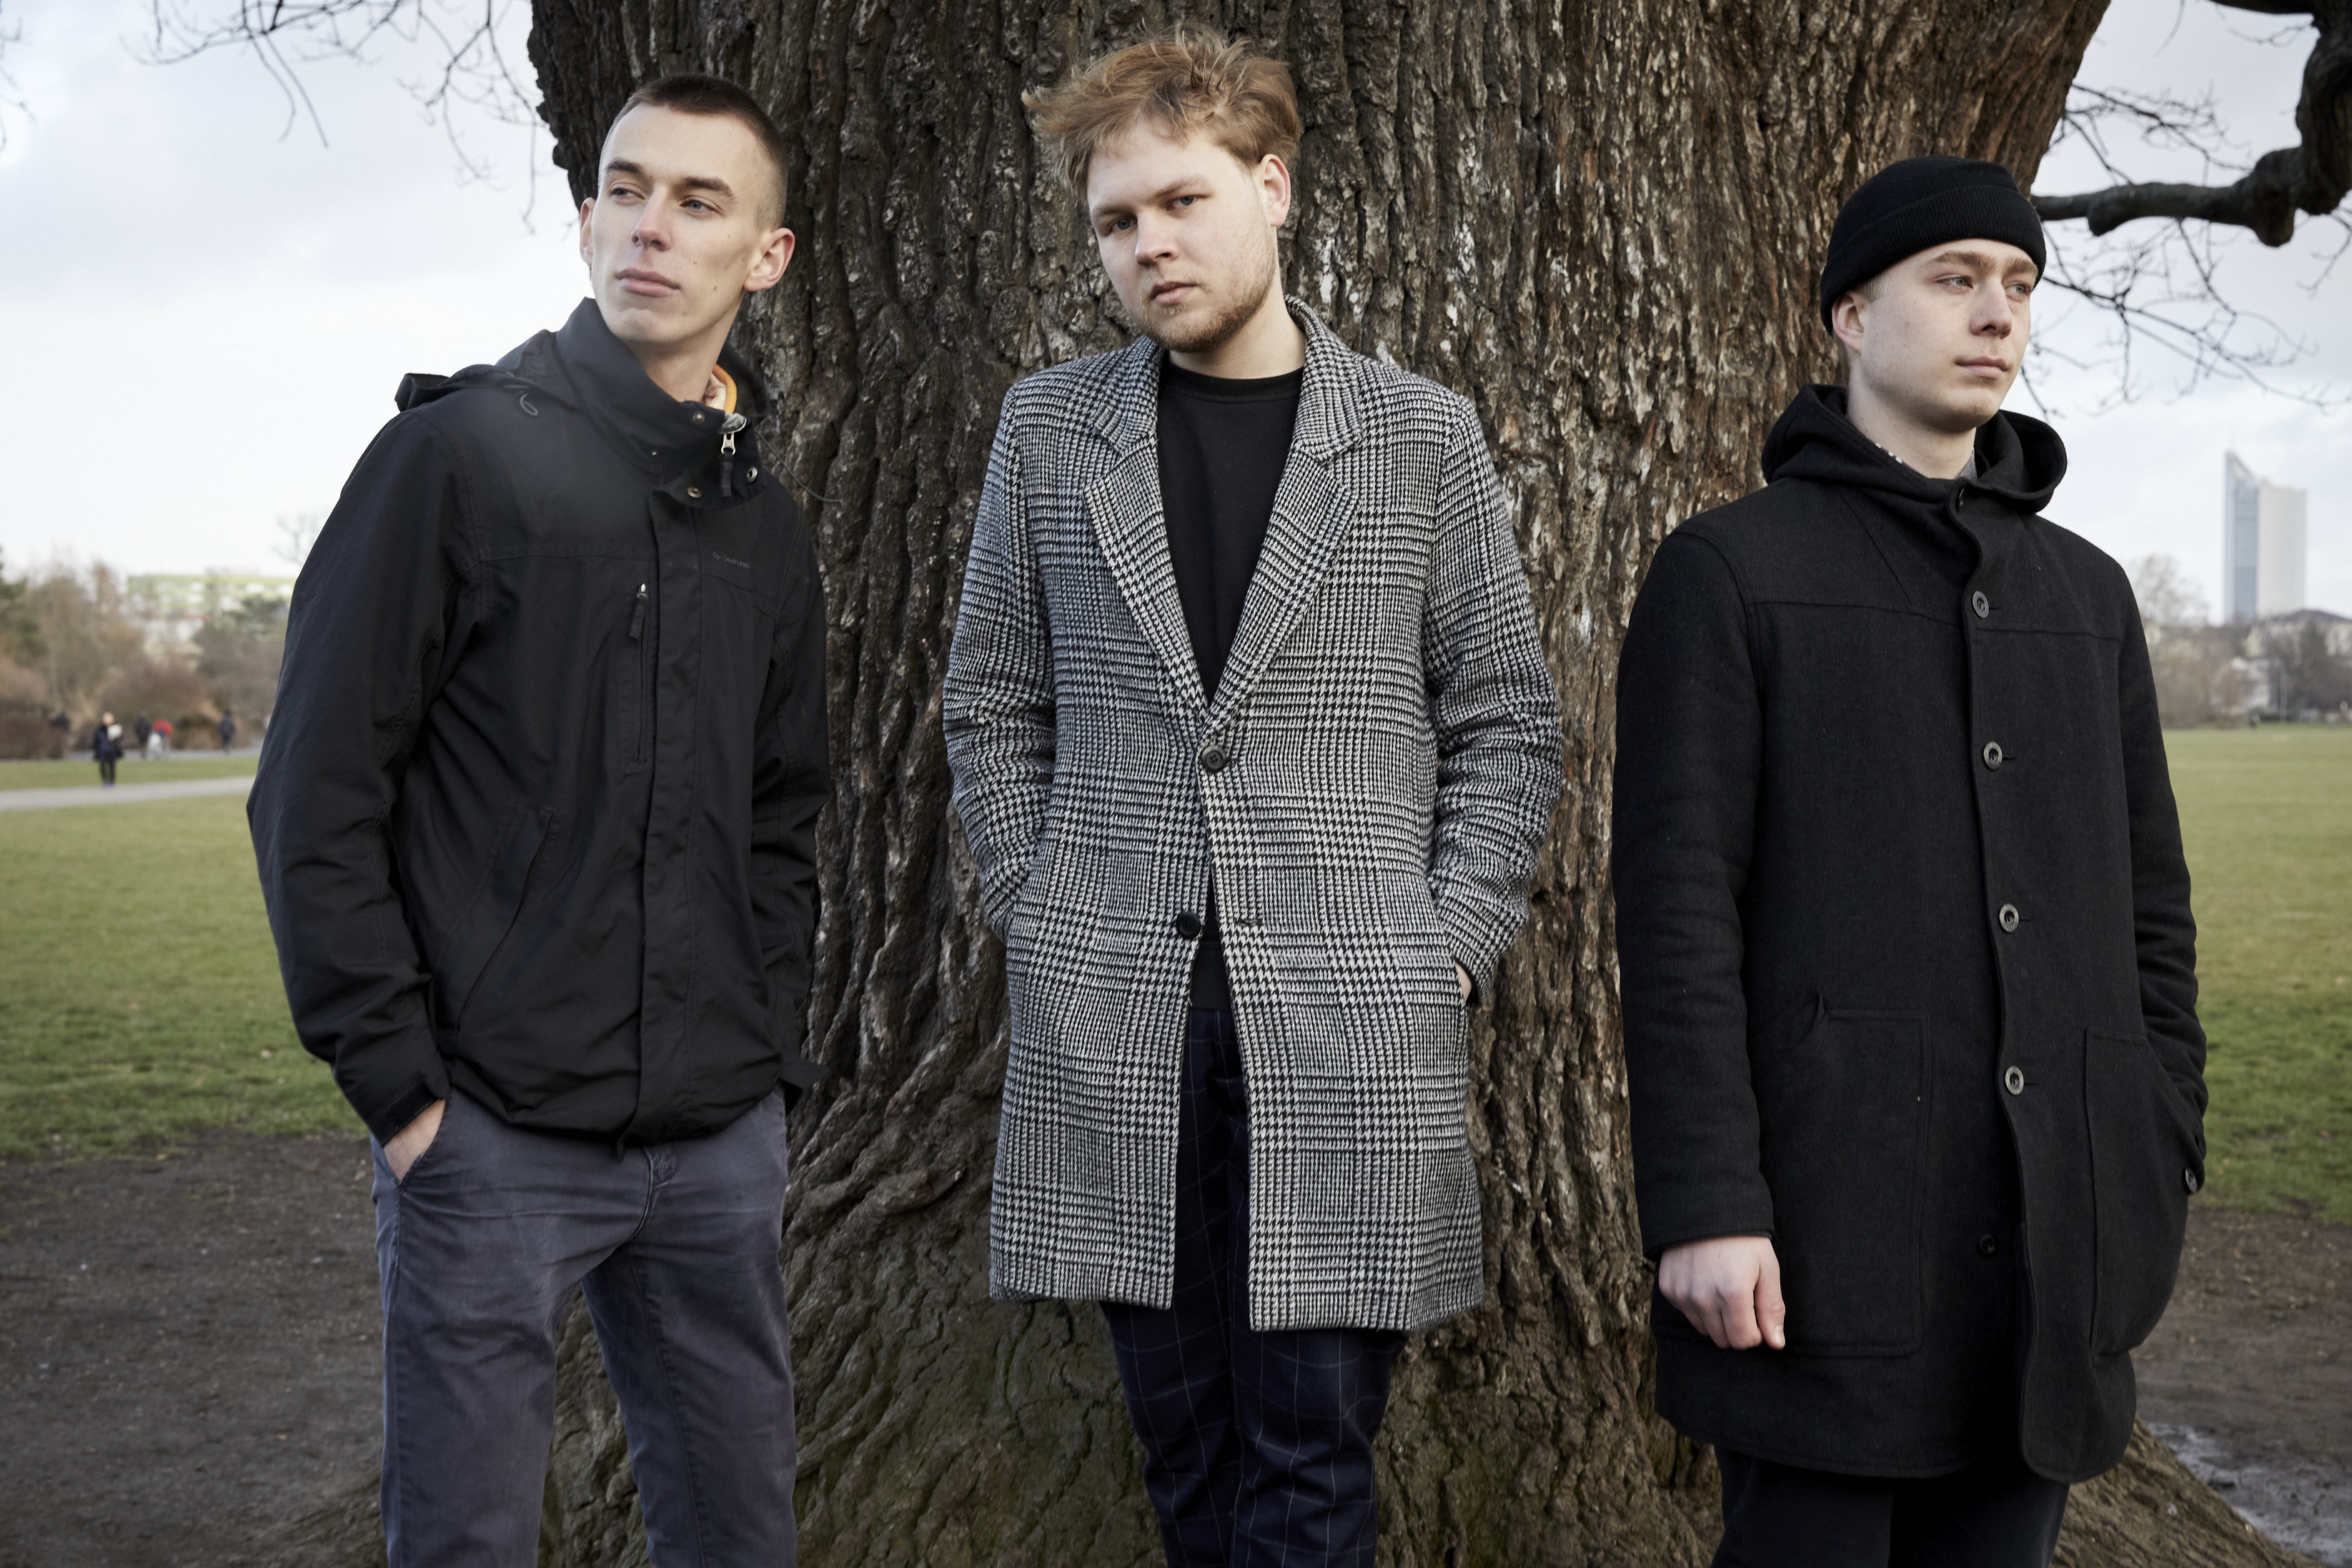 2.-Vicent-Meissner-Trio-Foto-1-ACT-Gregor-Hohenberg